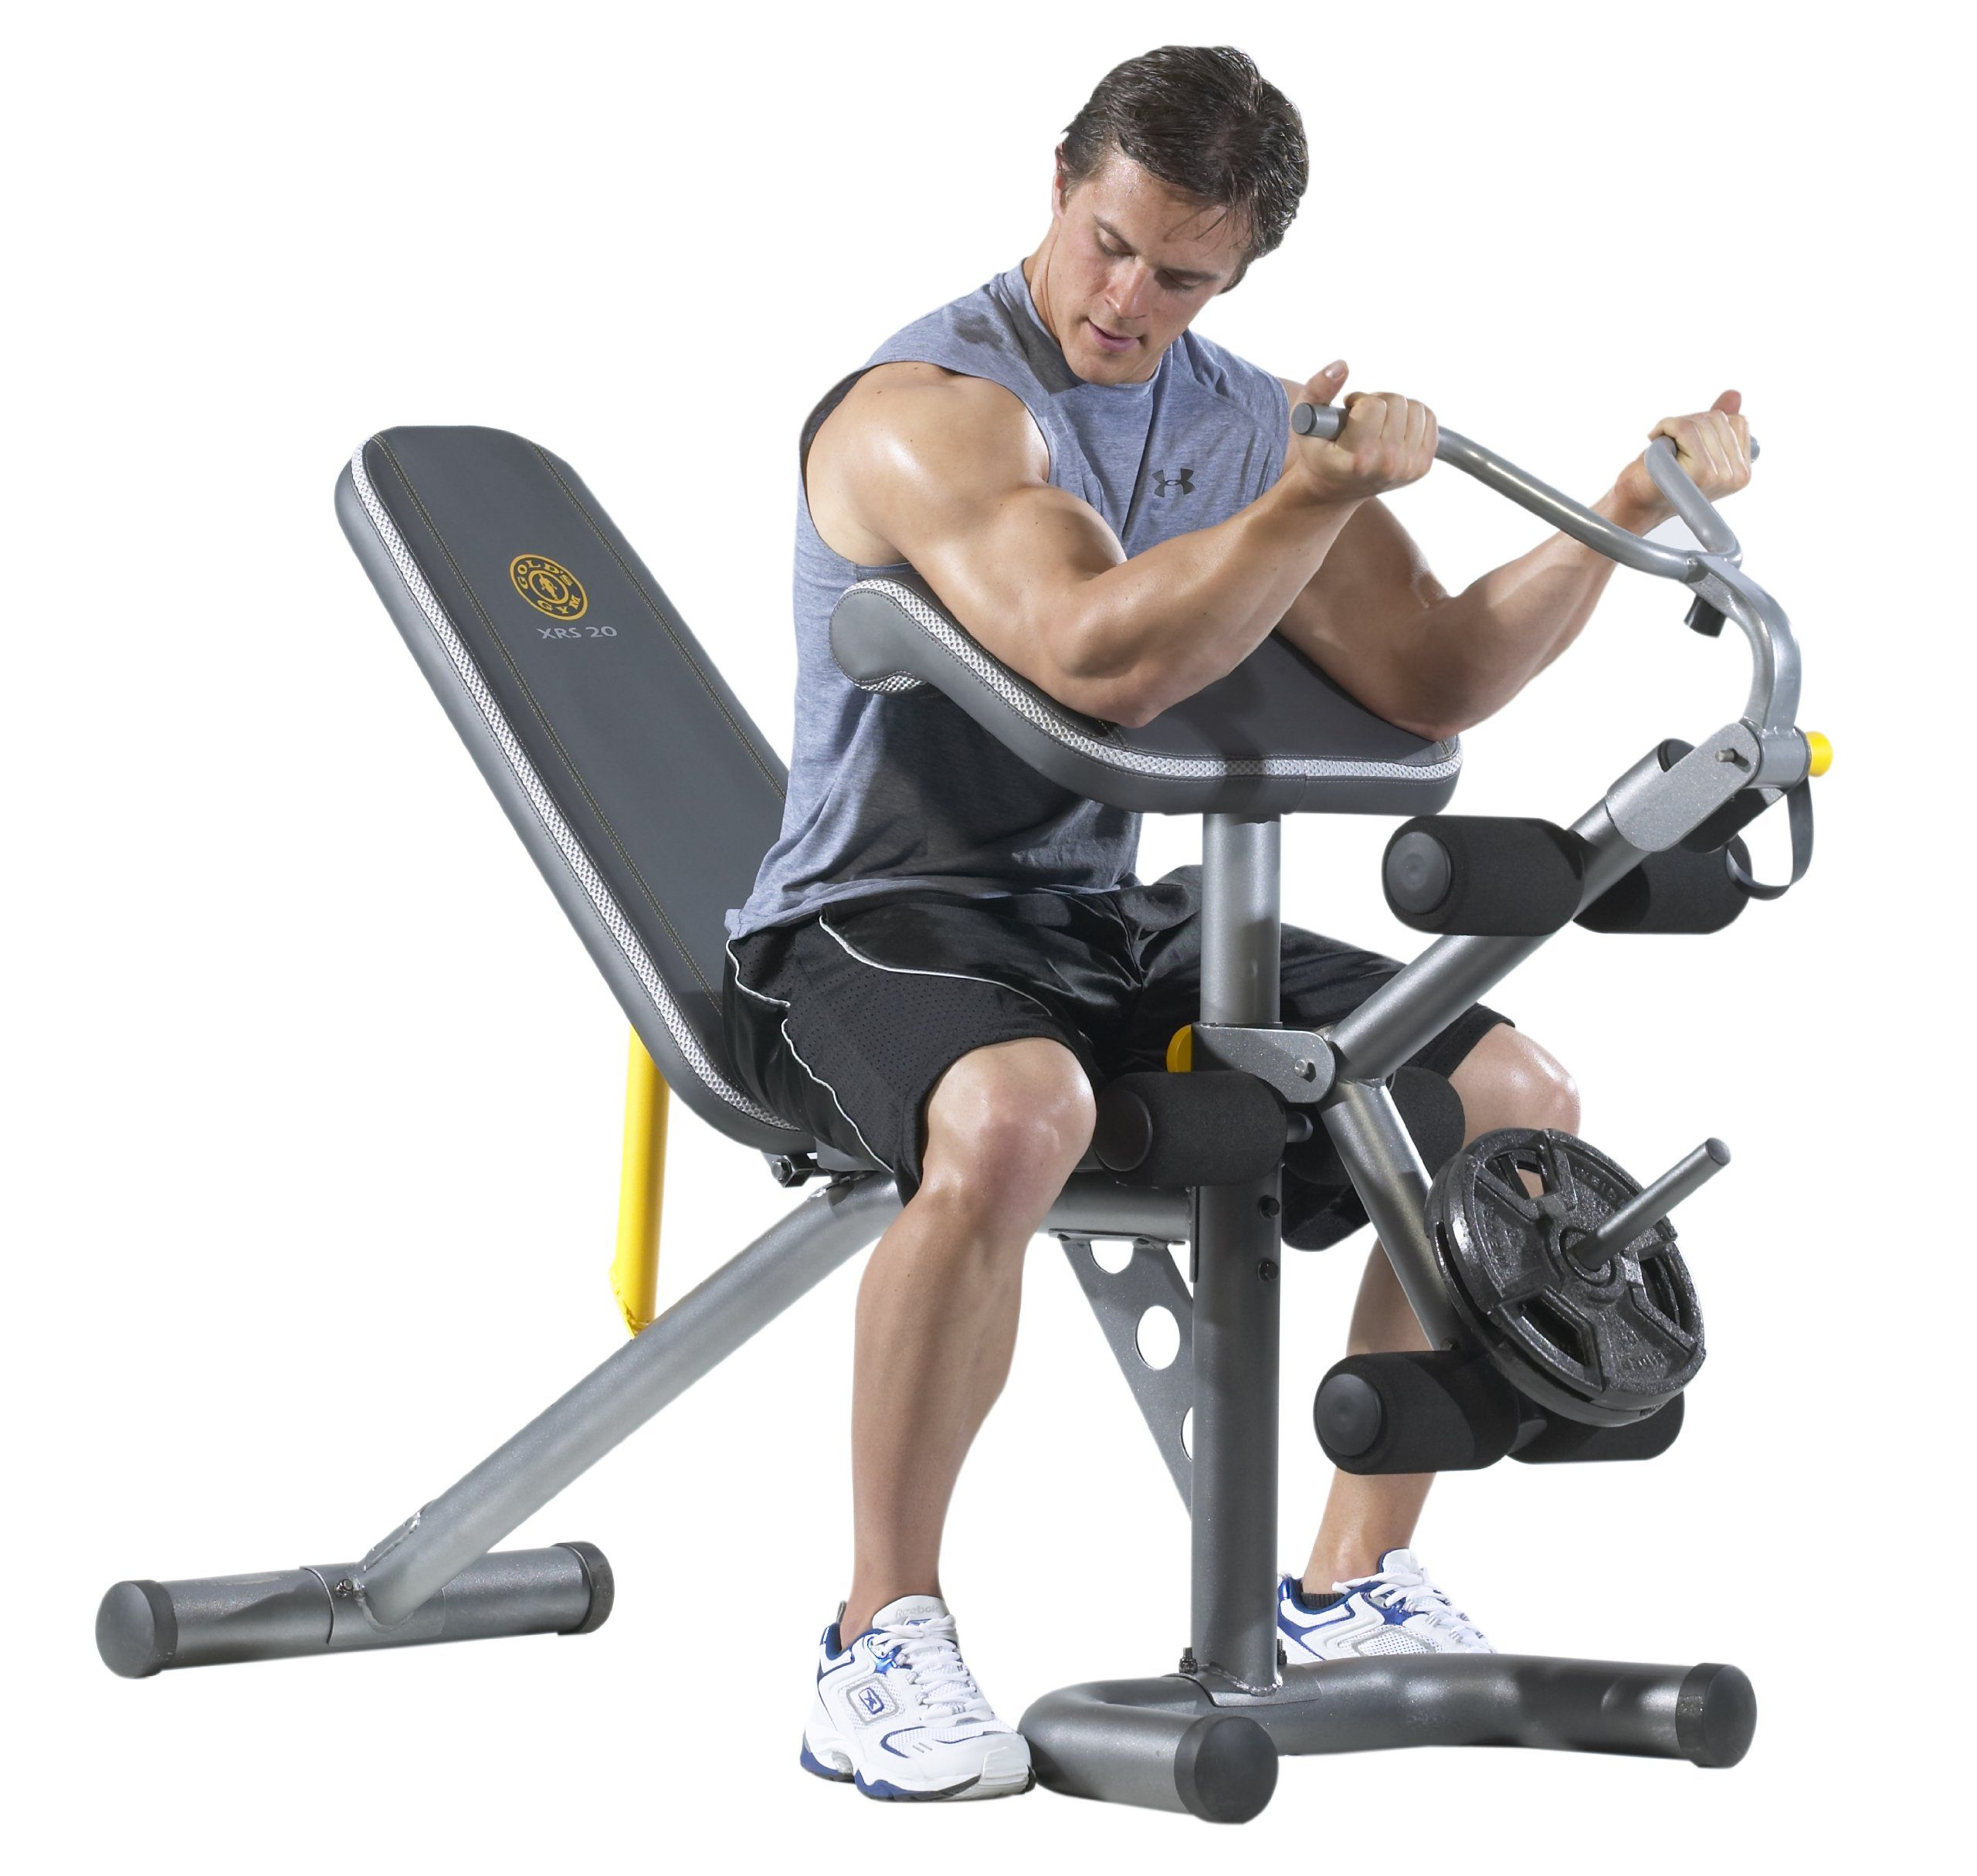 Gold S Gym Ggbe1486 Xrs 20 Olympic Bench Preacher Curl And Leg Curl Combo 310 Golds Gym Weight Benches At Home Gym